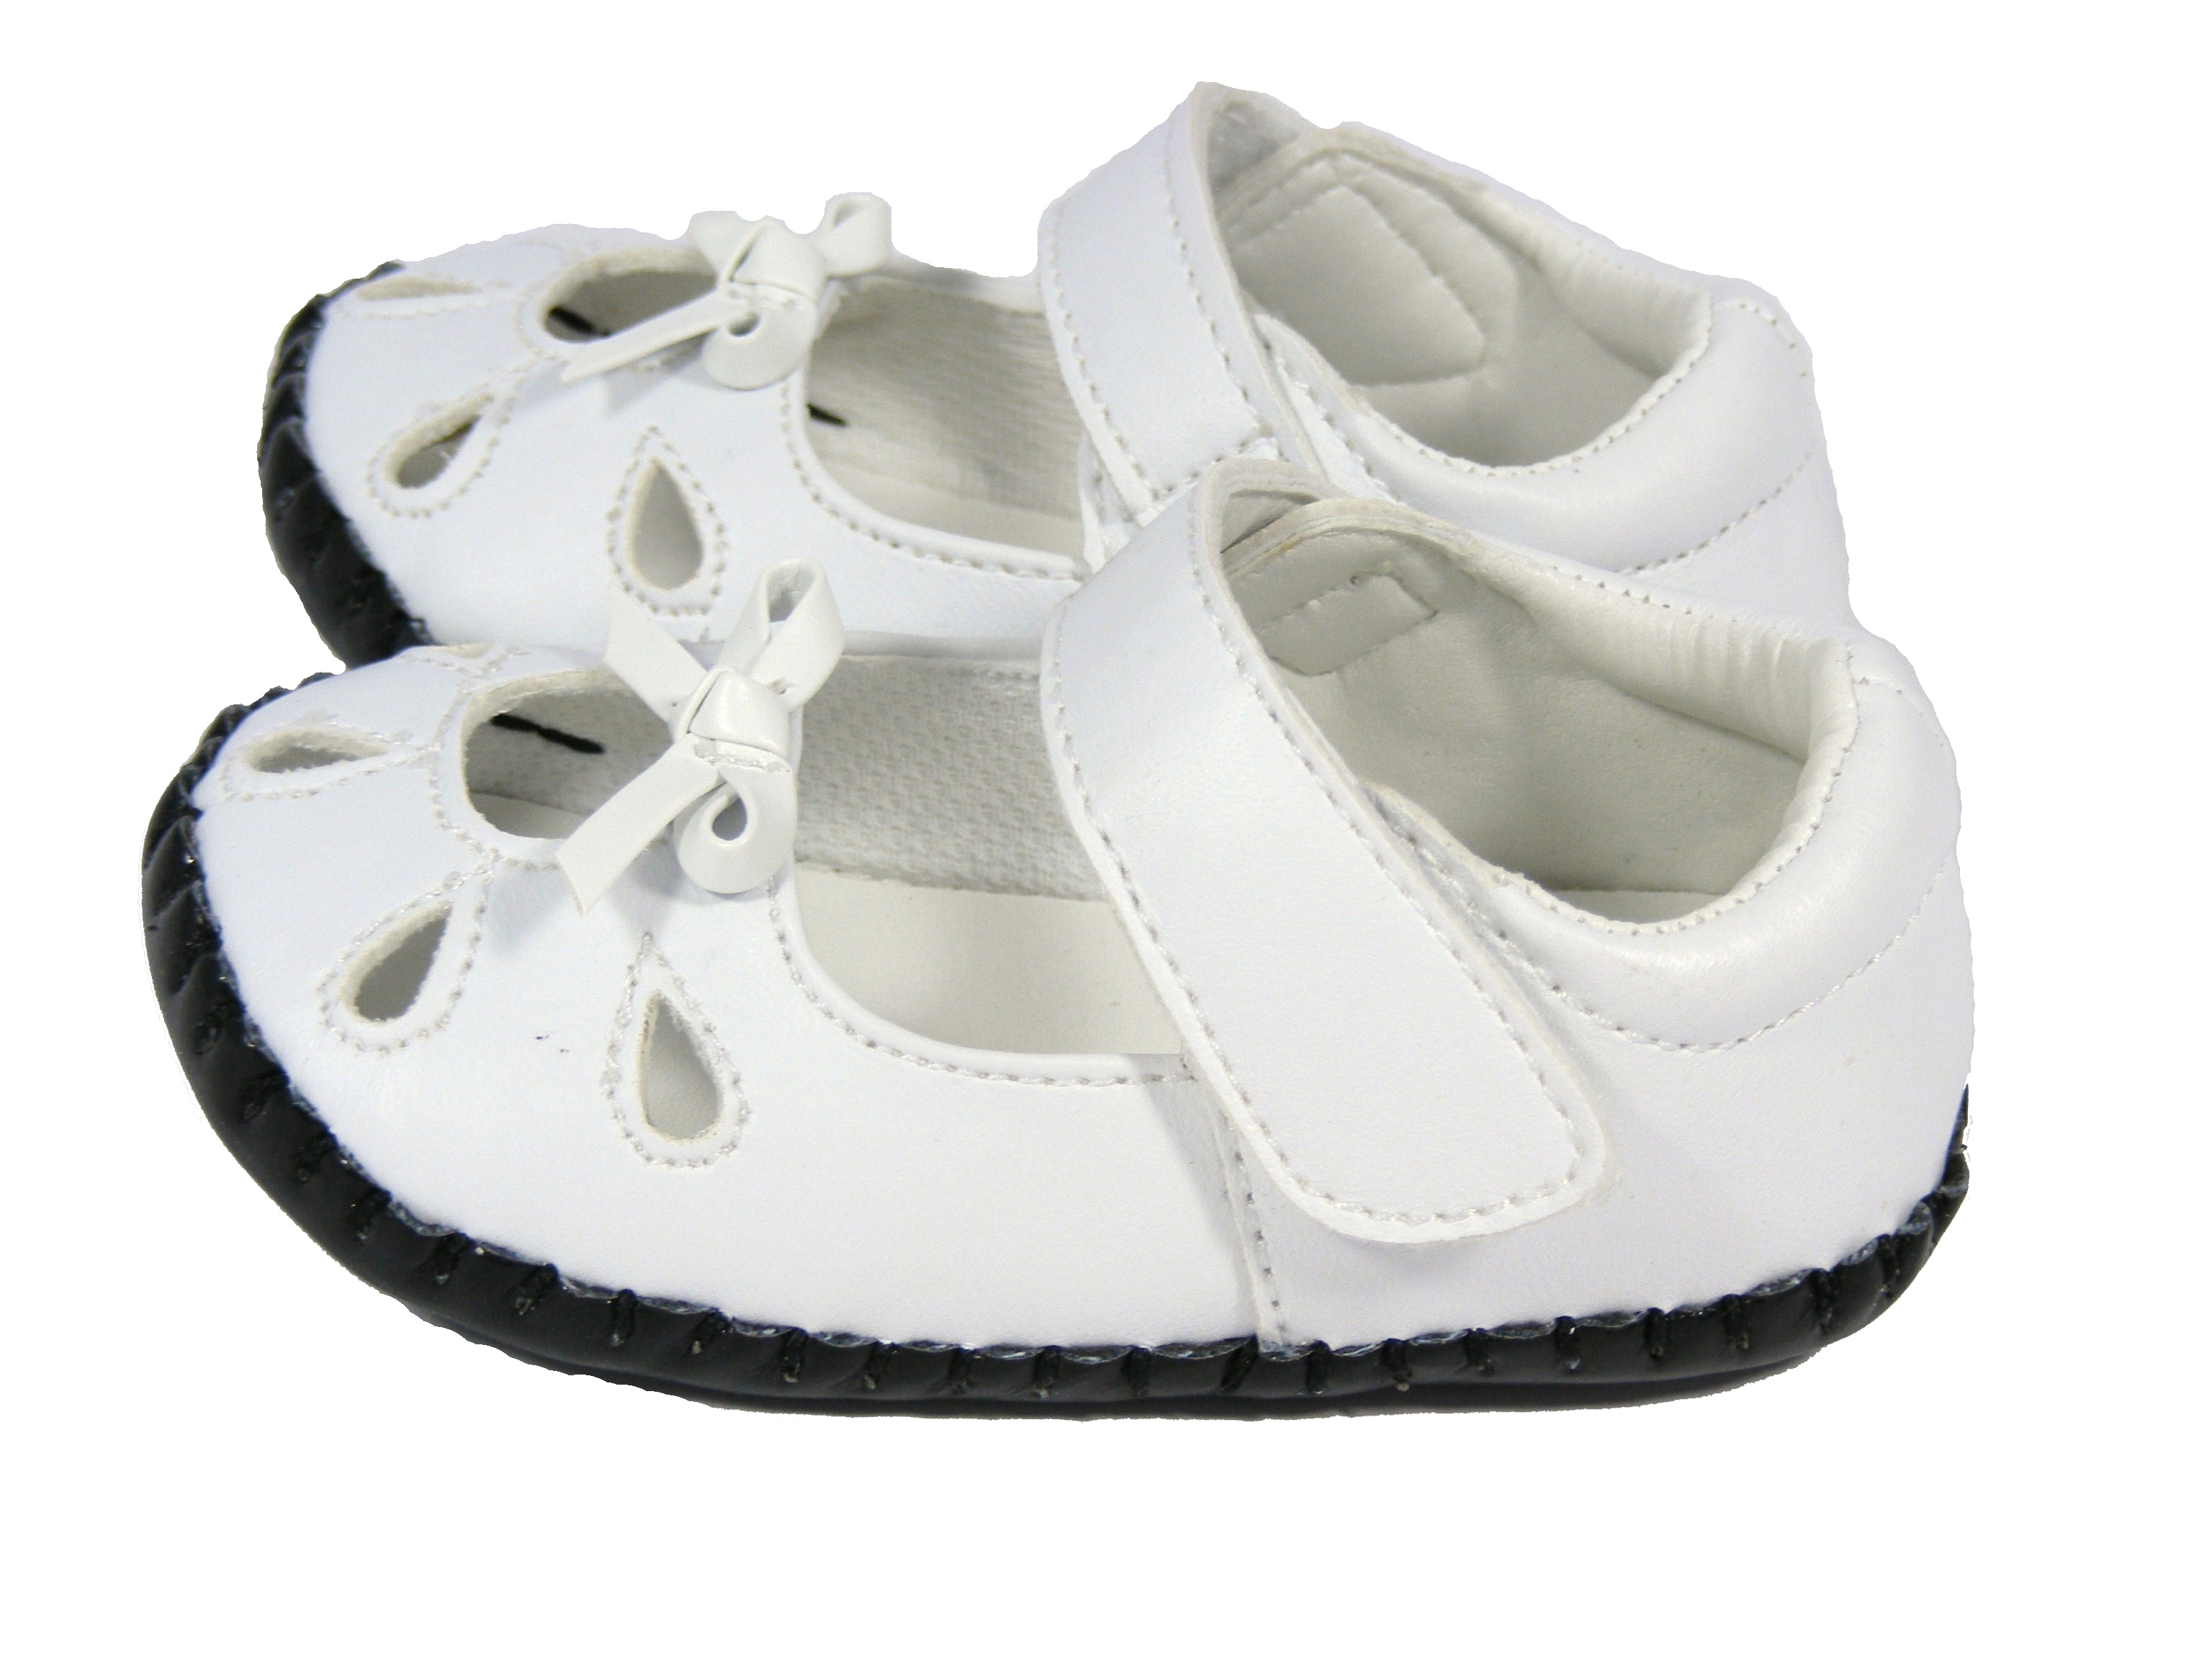 Shoes White Sneakers Infant Ebay